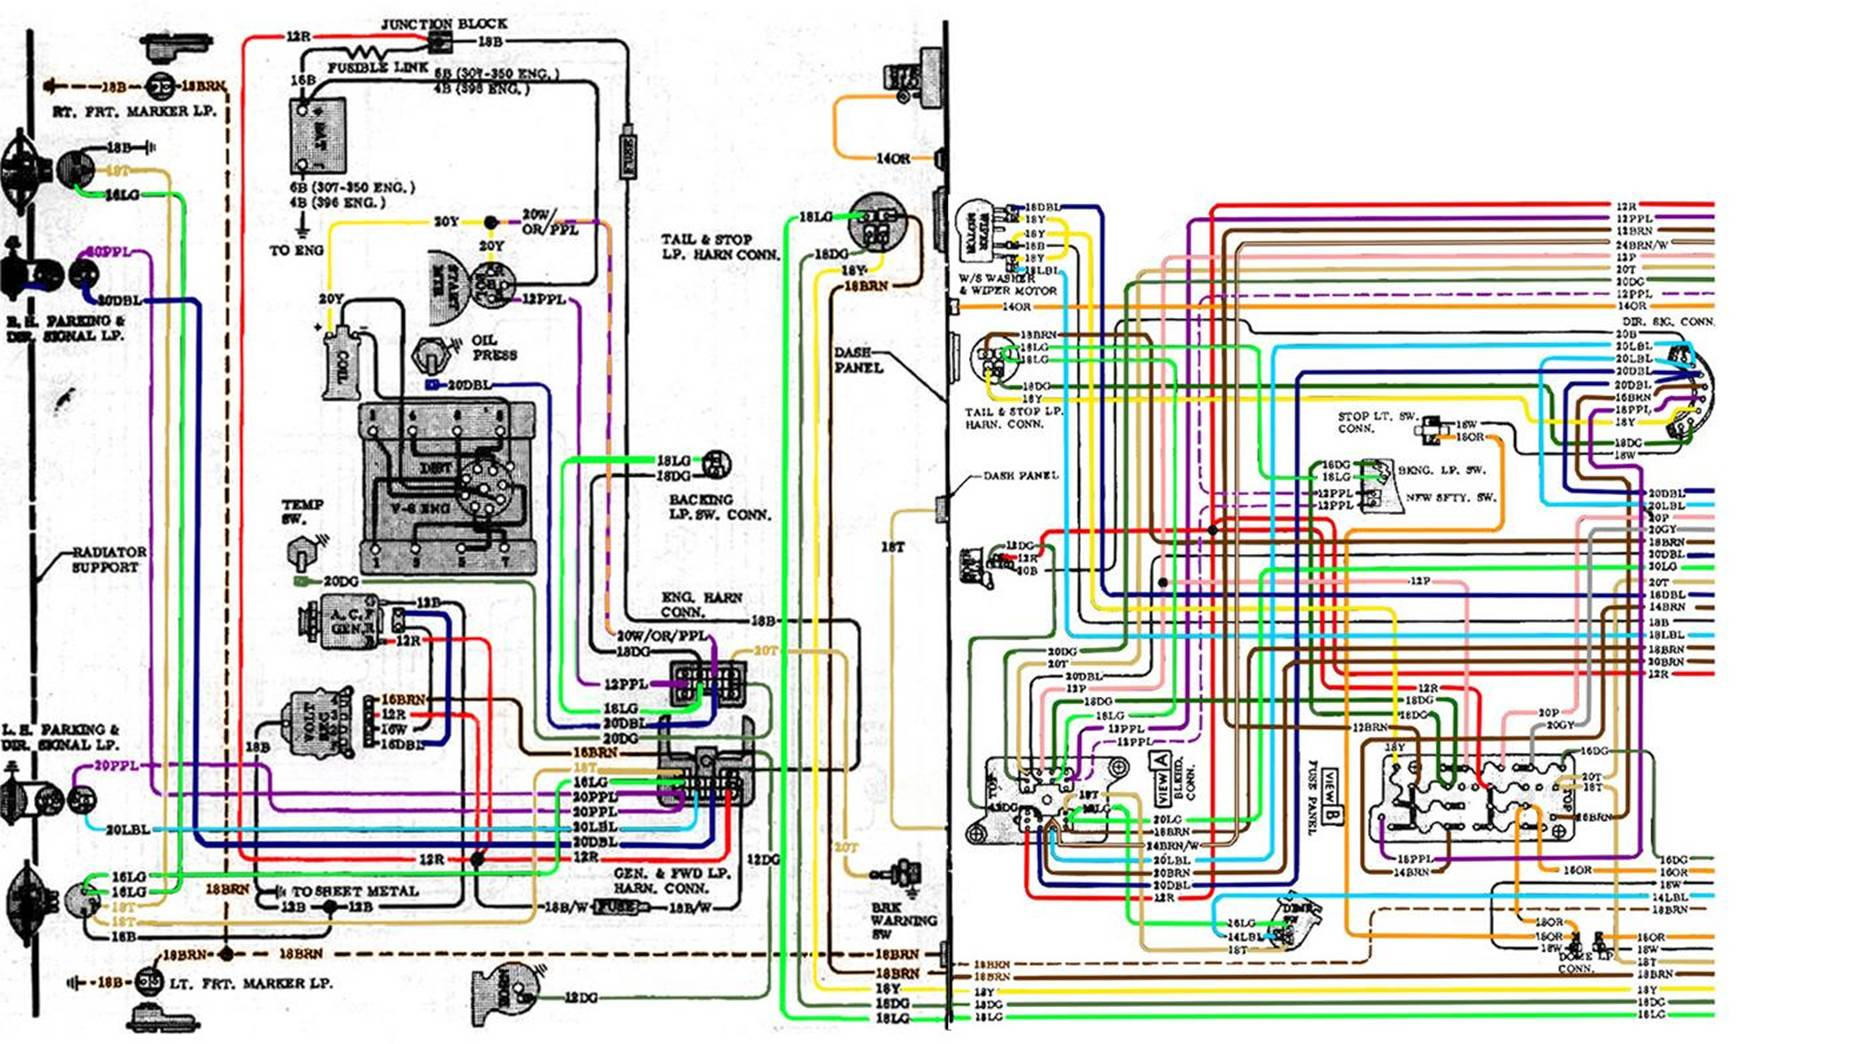 hight resolution of 70 chevy c10 wiring diagram wiring diagram todays rh 14 16 10 1813weddingbarn com 1970 chevy